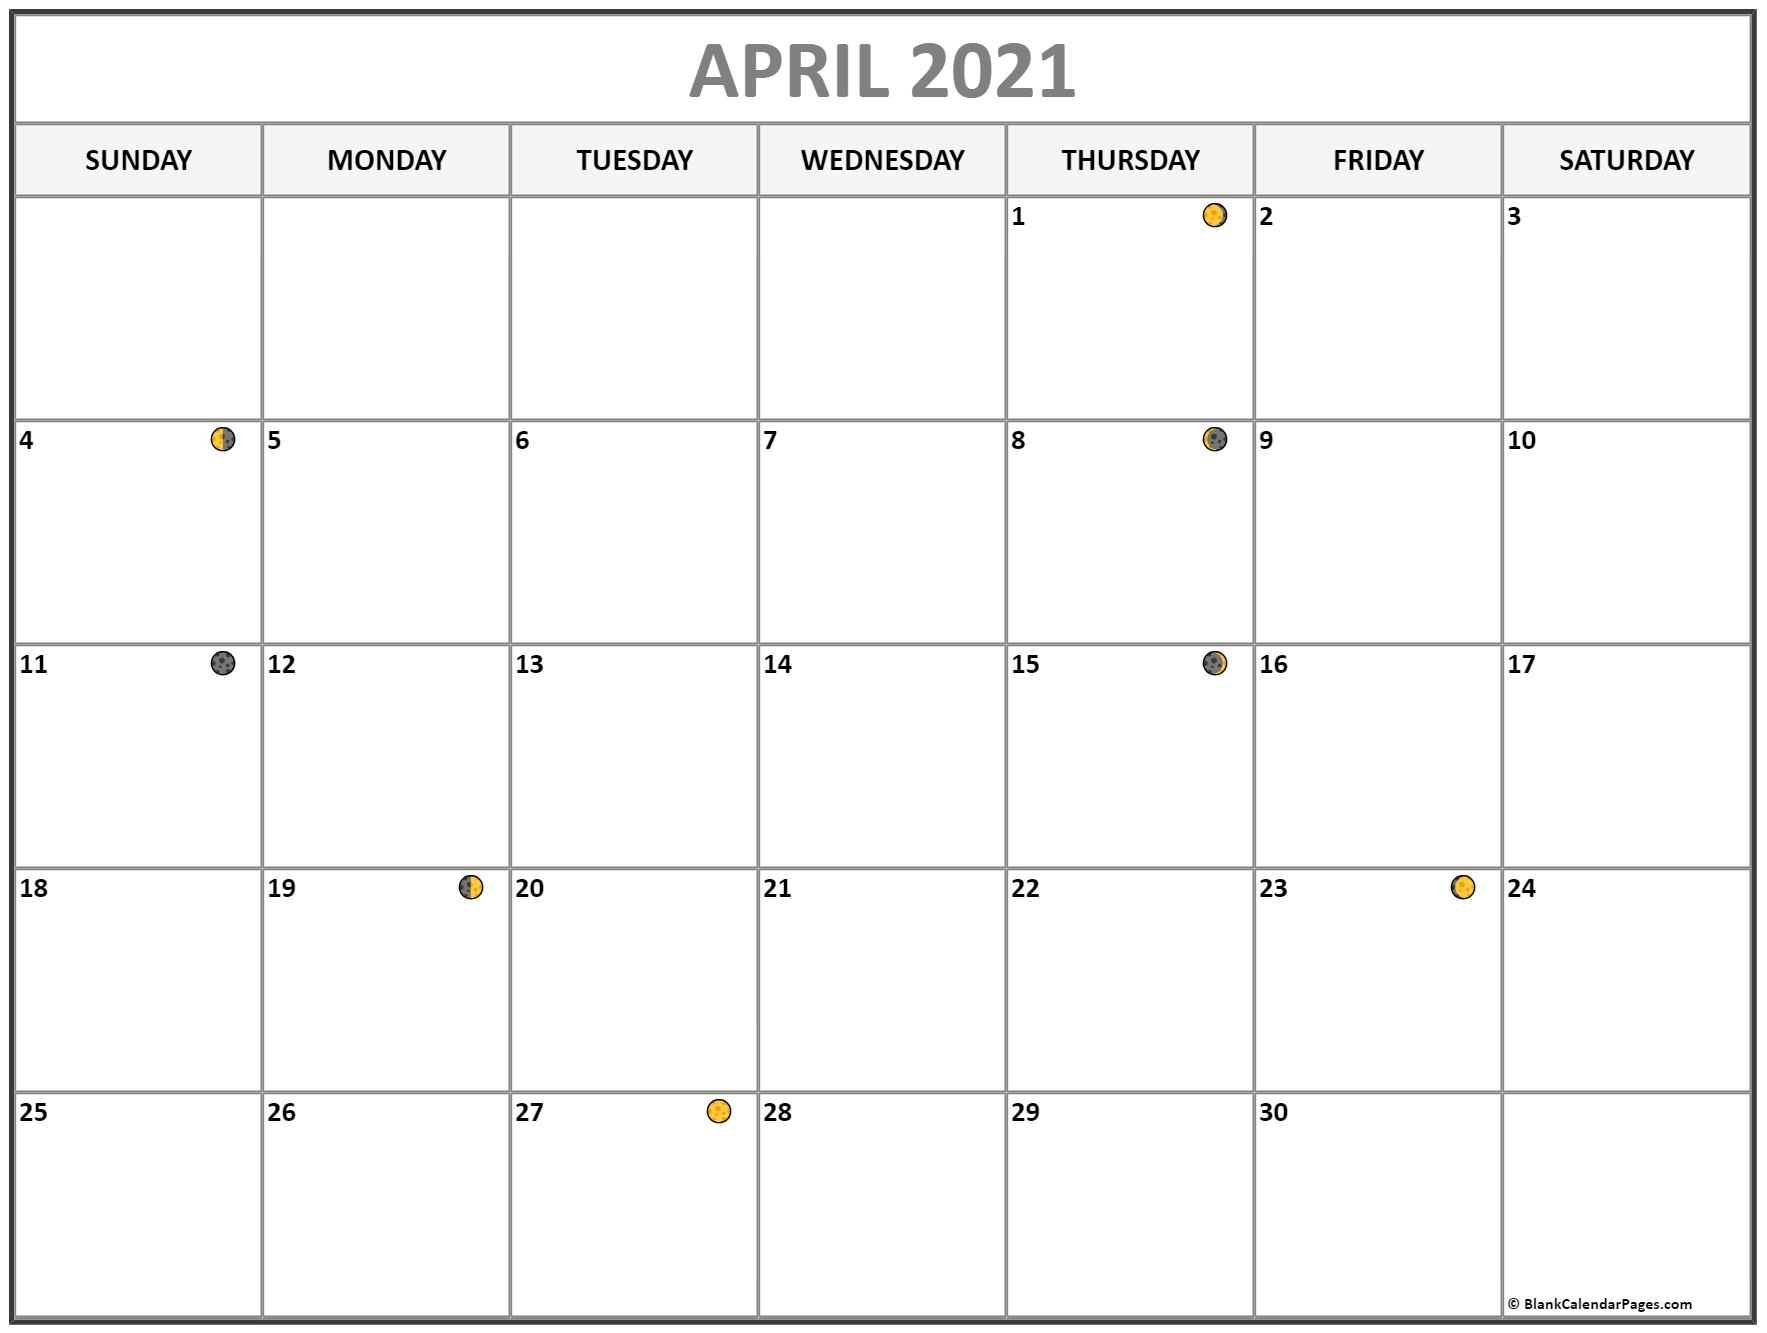 Catch August Calendar 2021 With Moon Cycle